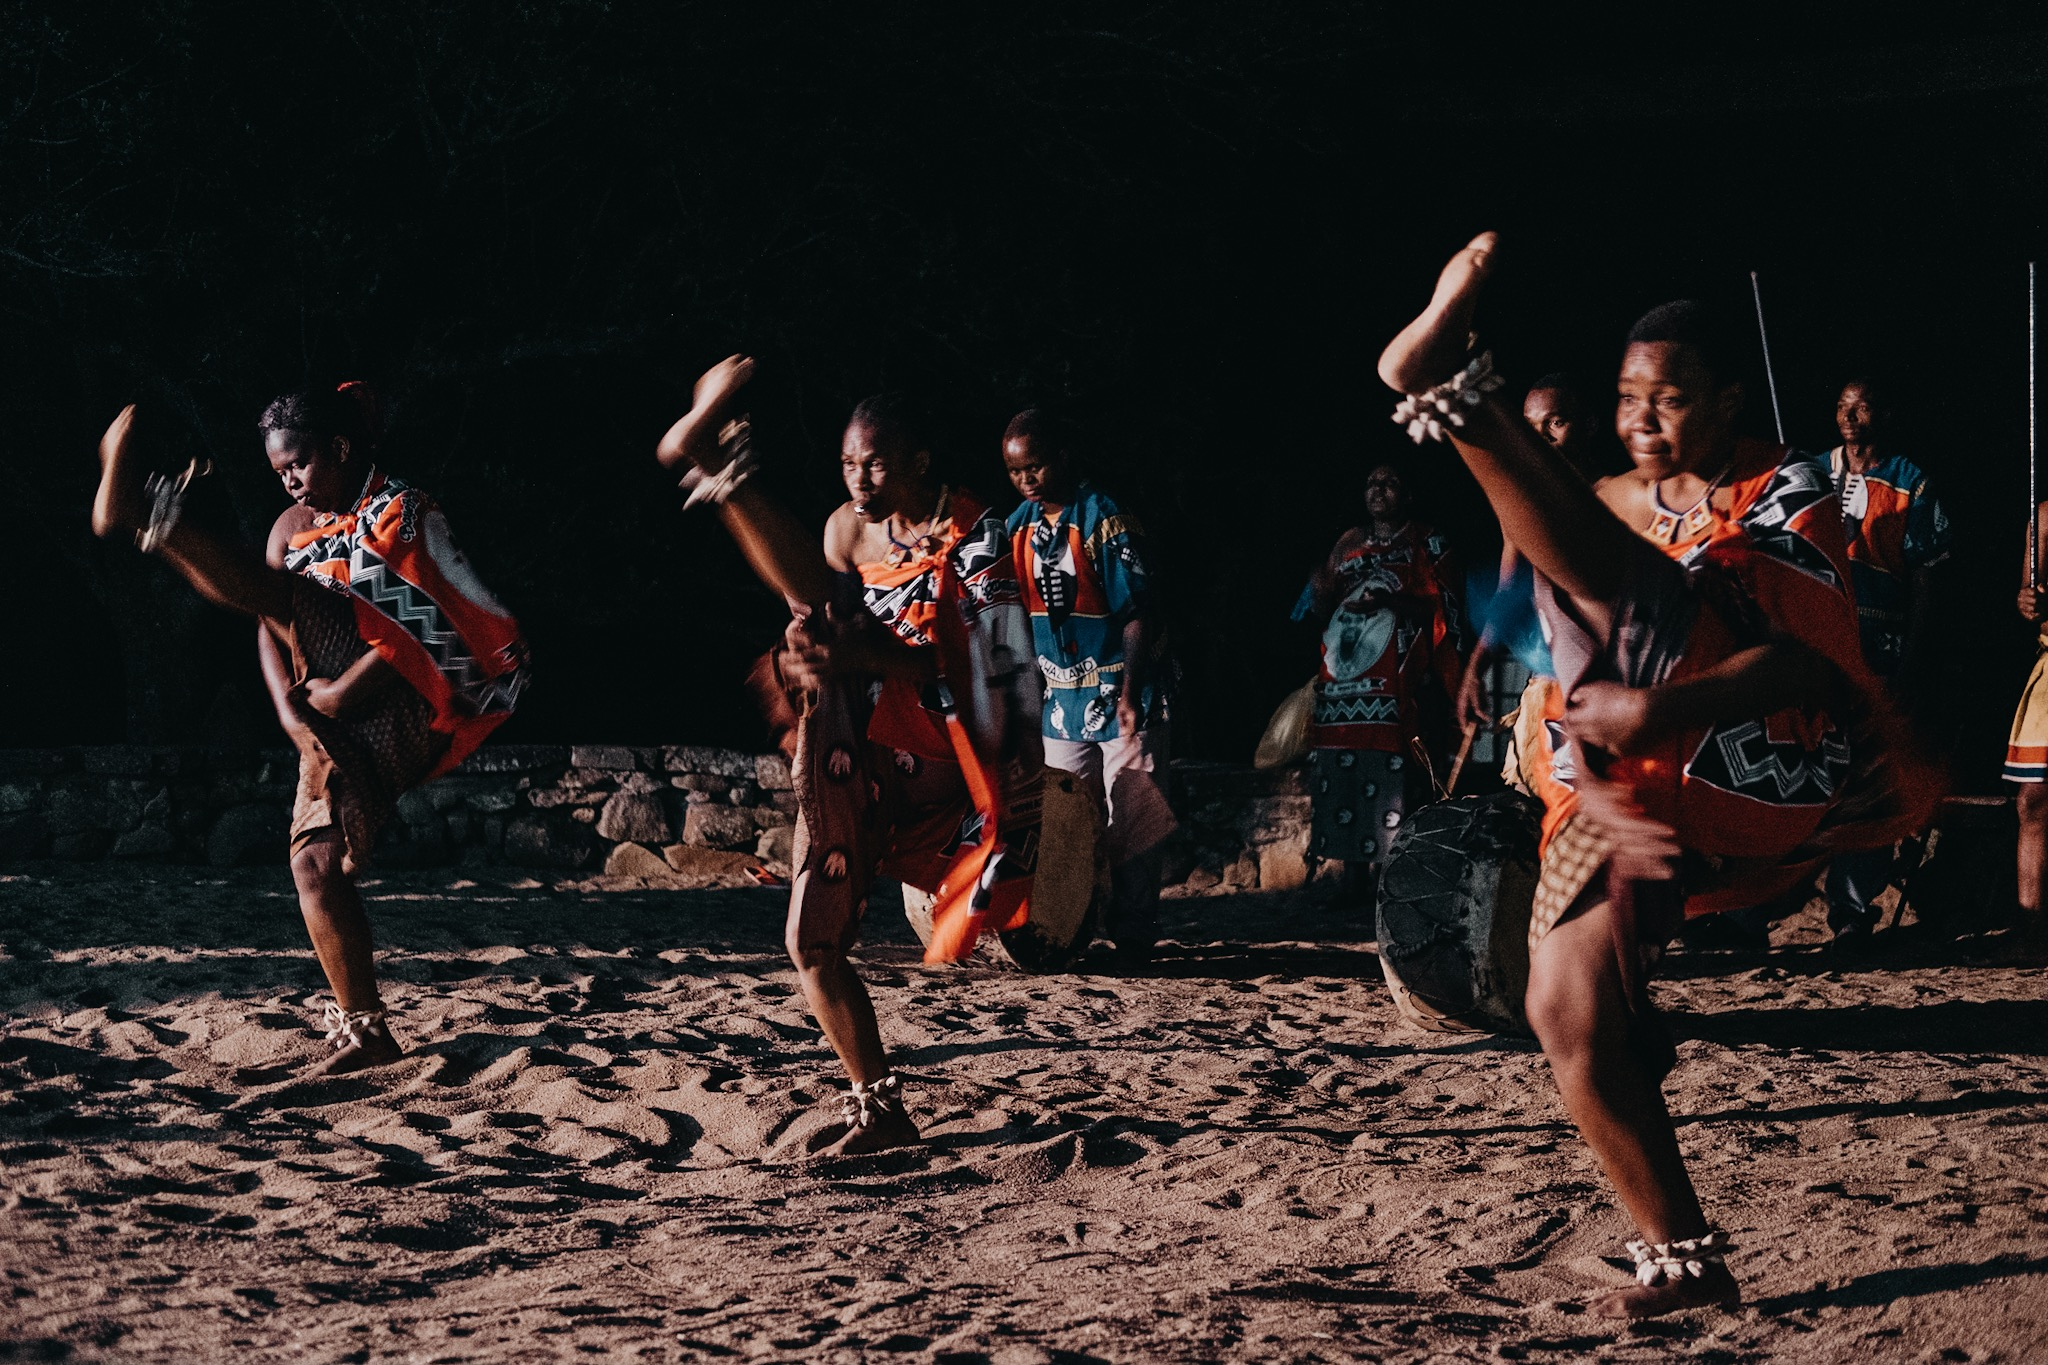 Local Swaziland dancers perform at the Mlilwane Wildlife Sanctuary around the campfire.